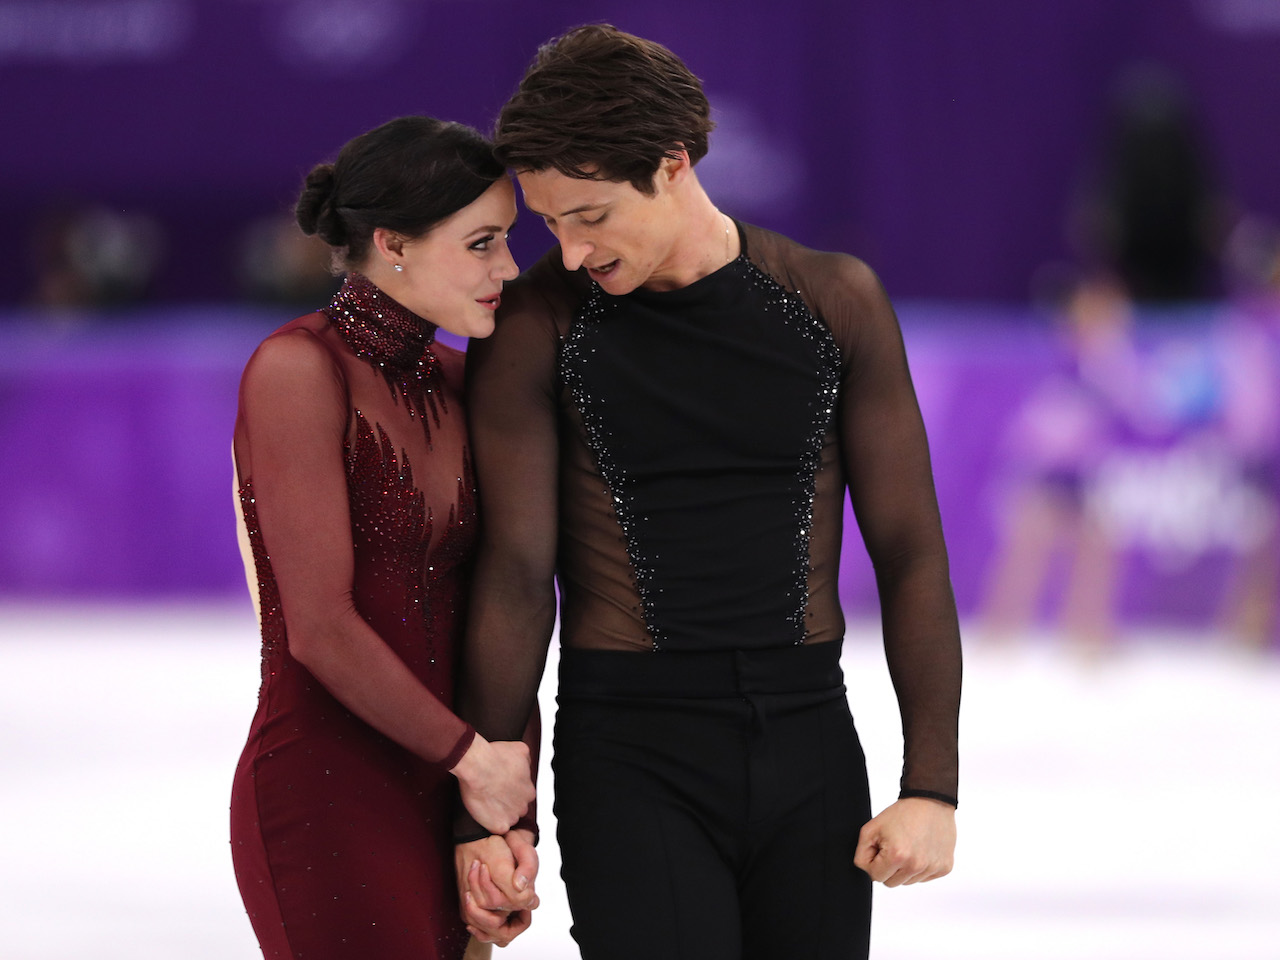 scott and tessa relationship: pair at olympics